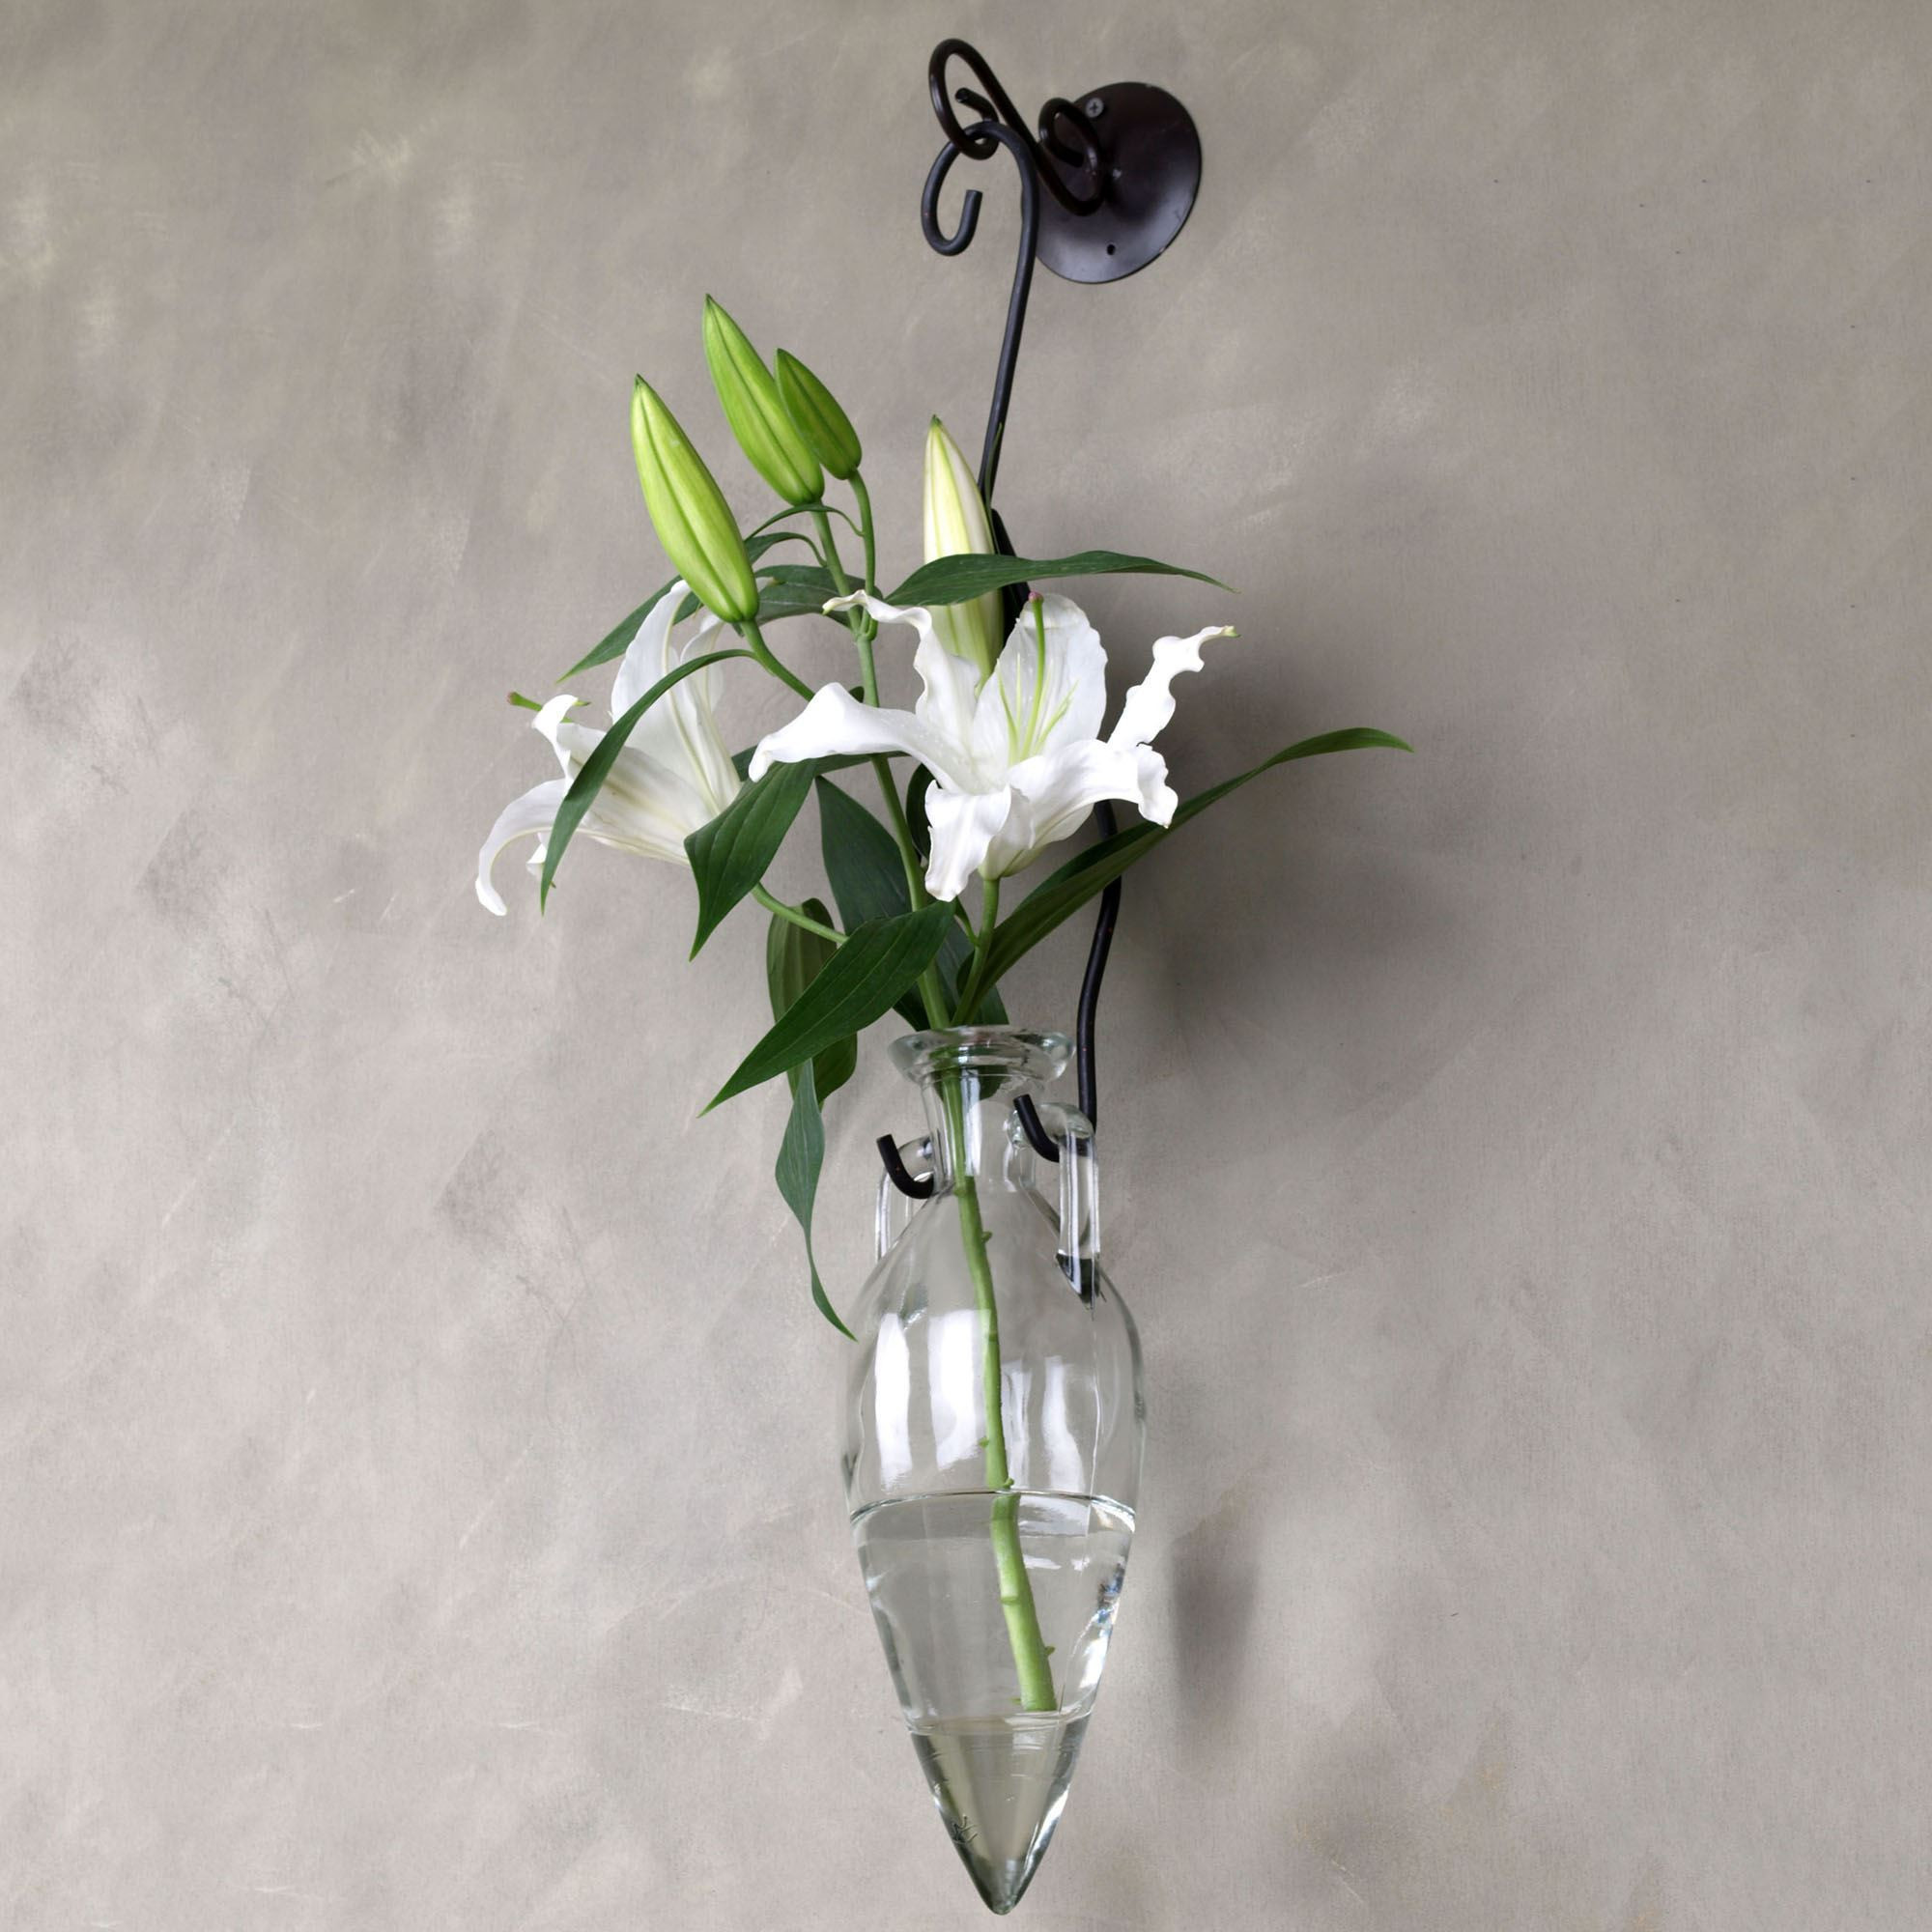 White Glass Flower Vase Of Wall Decor Flowers Great H Vases Wall Hanging Flower Vase Newspaper Intended for Wall Decor Flowers Great H Vases Wall Hanging Flower Vase Newspaper I 0d Scheme Wall Scheme